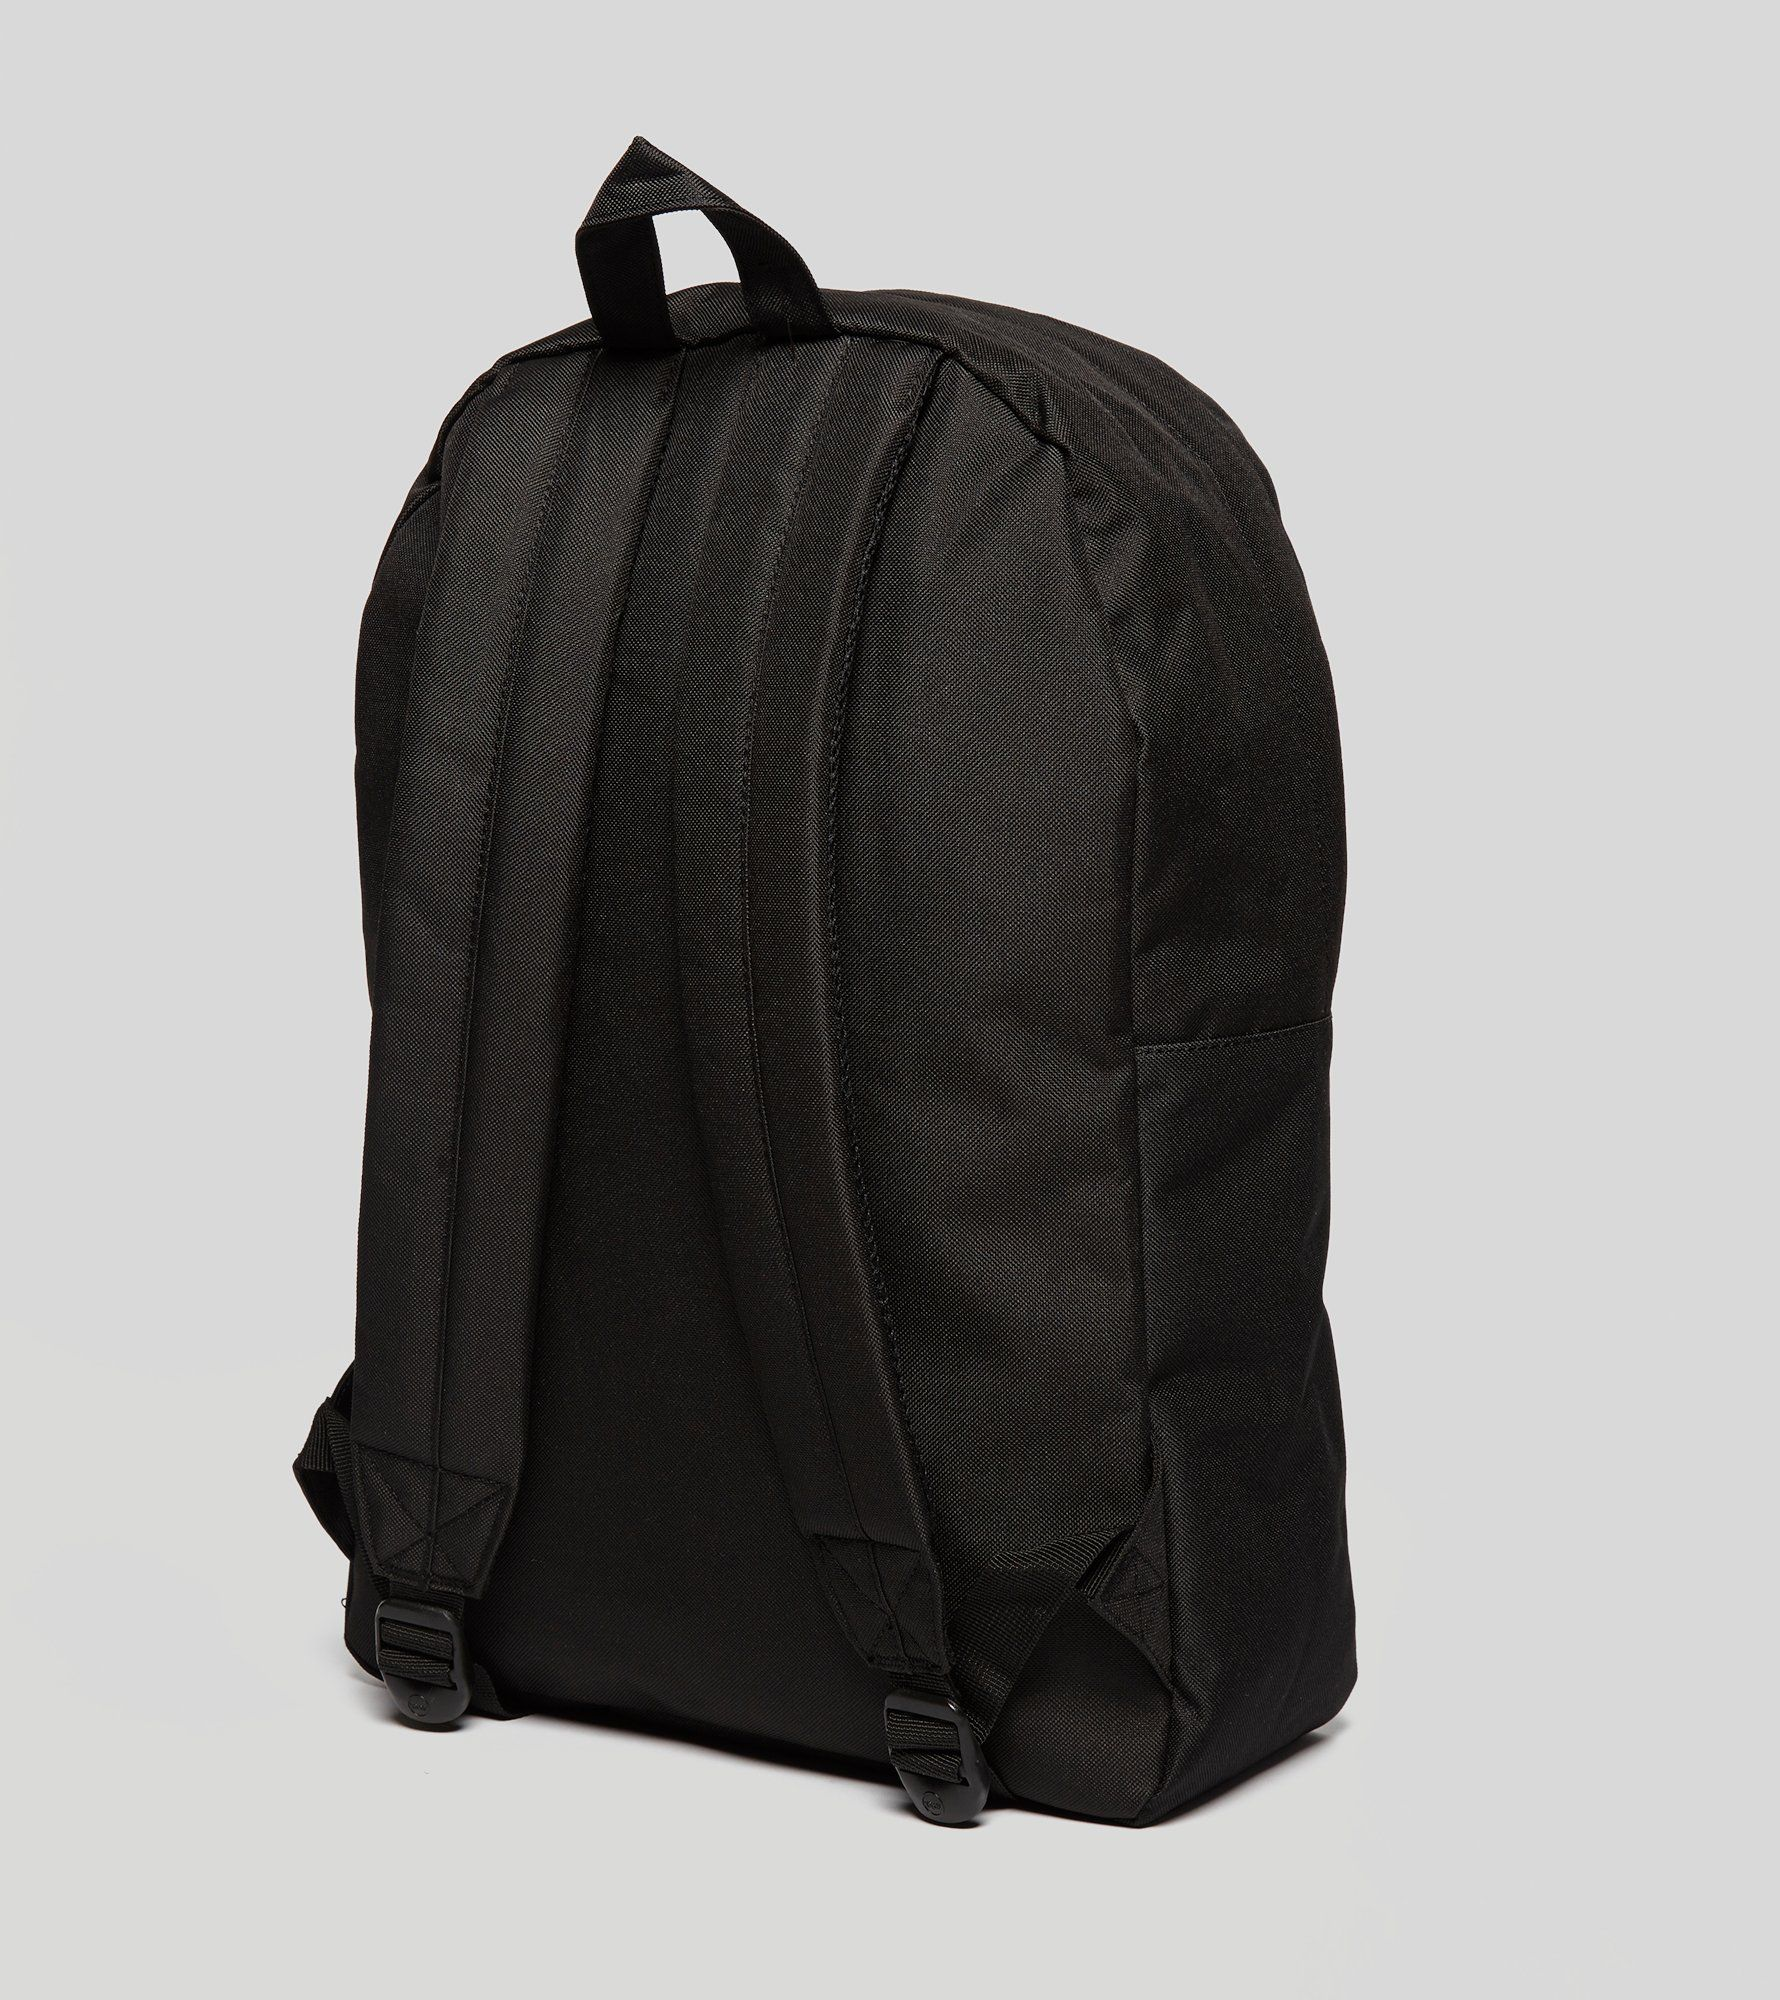 Herschel Supply Co Classic Backpack